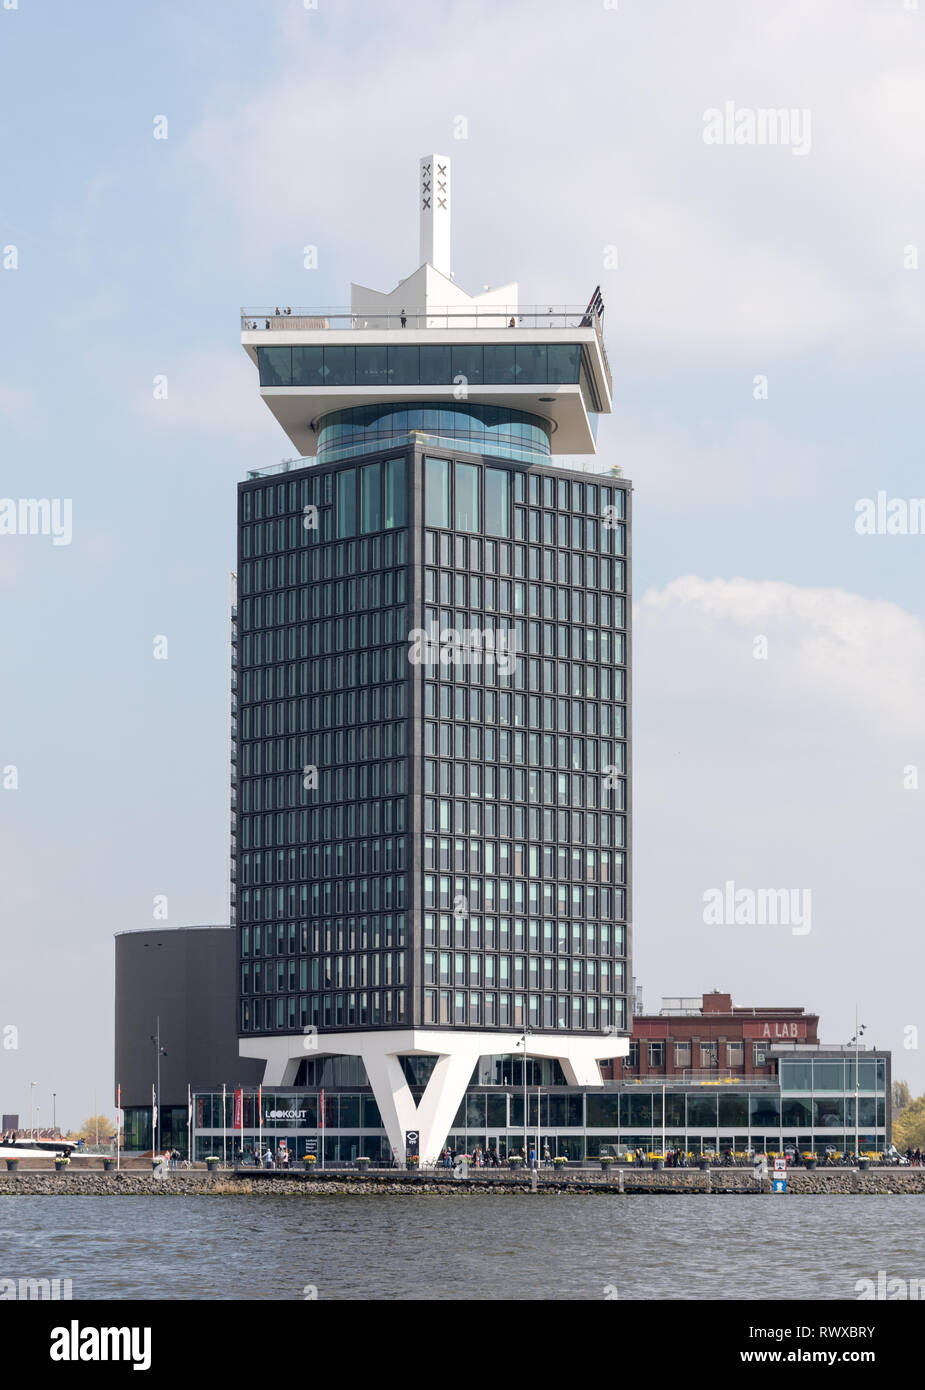 AMSTERDAM, NETHERLANDS - APRIL 20, 2017: EYE Film Institute Netherlands is located in Amsterdam in the Netherlands. It includes a cinematography museu - Stock Image